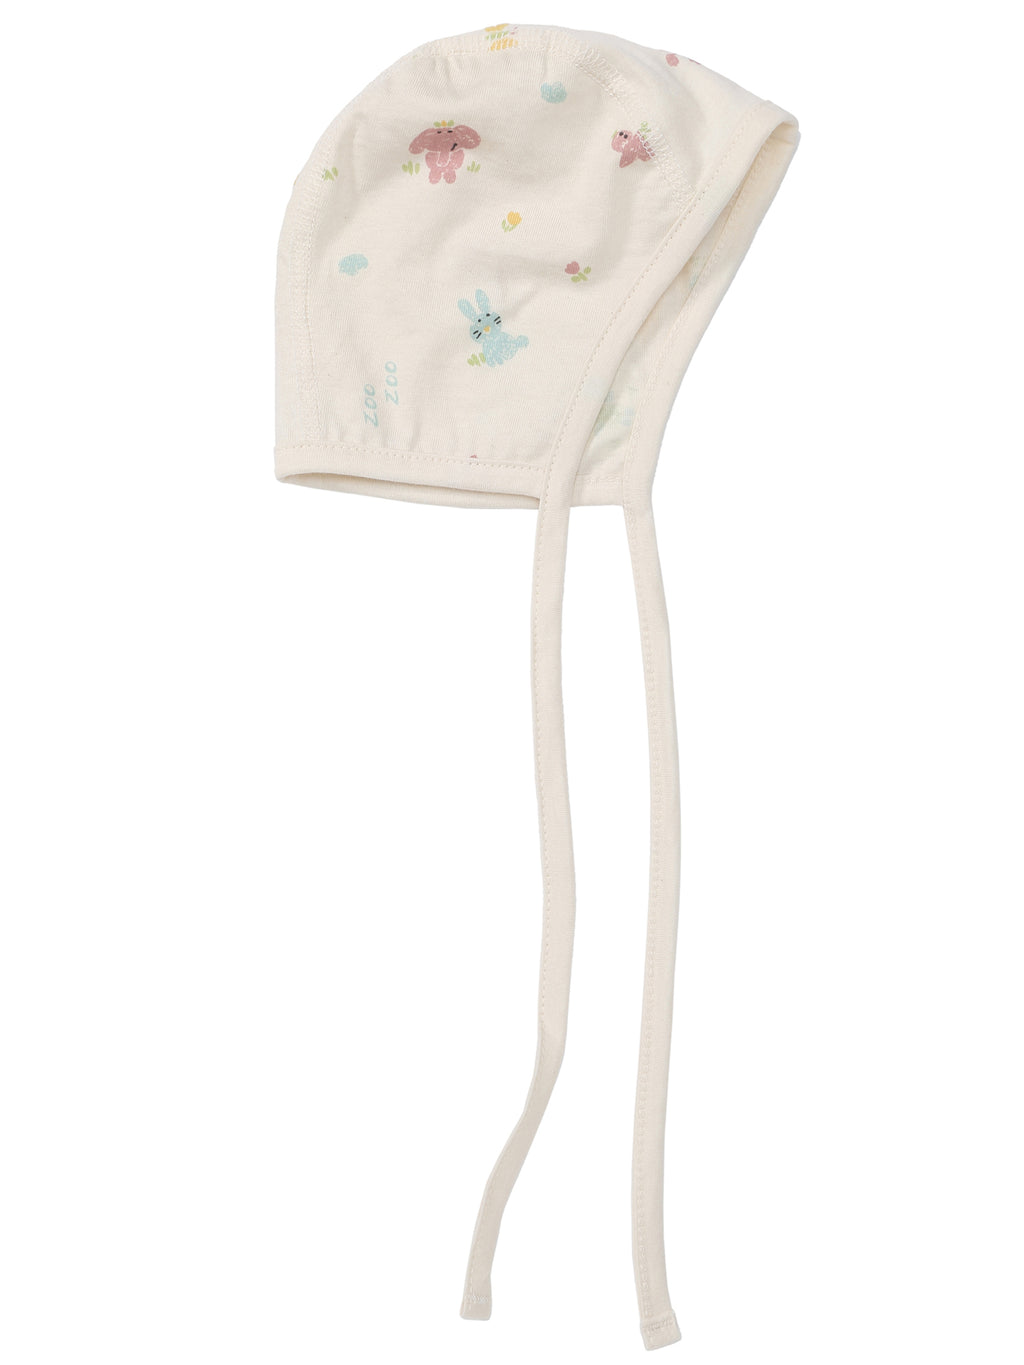 Newborn Infant Soft Bonnet Pilot Hat - HiOrganic